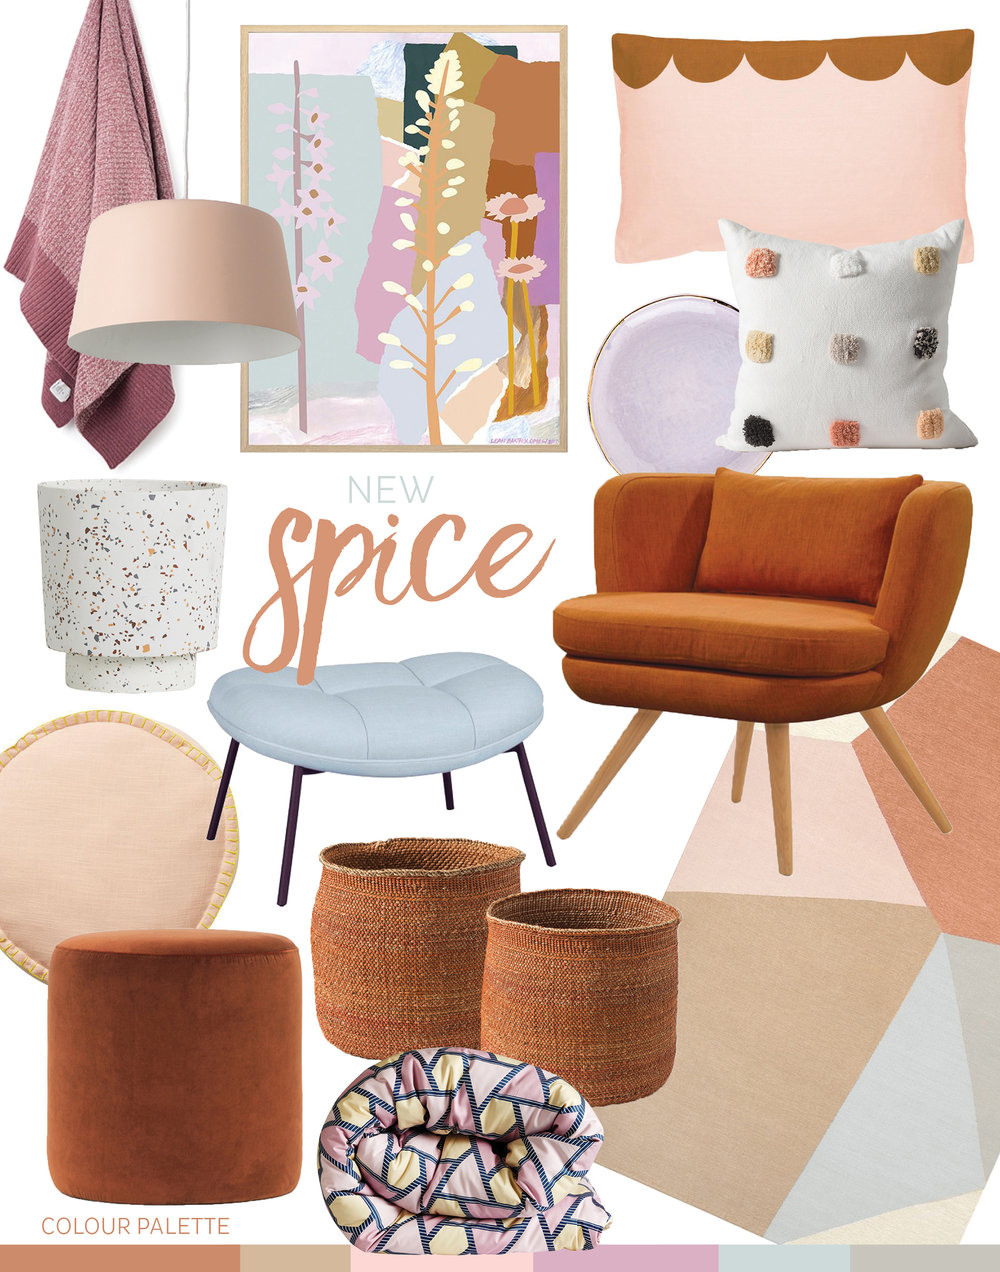 Trend: New Spice